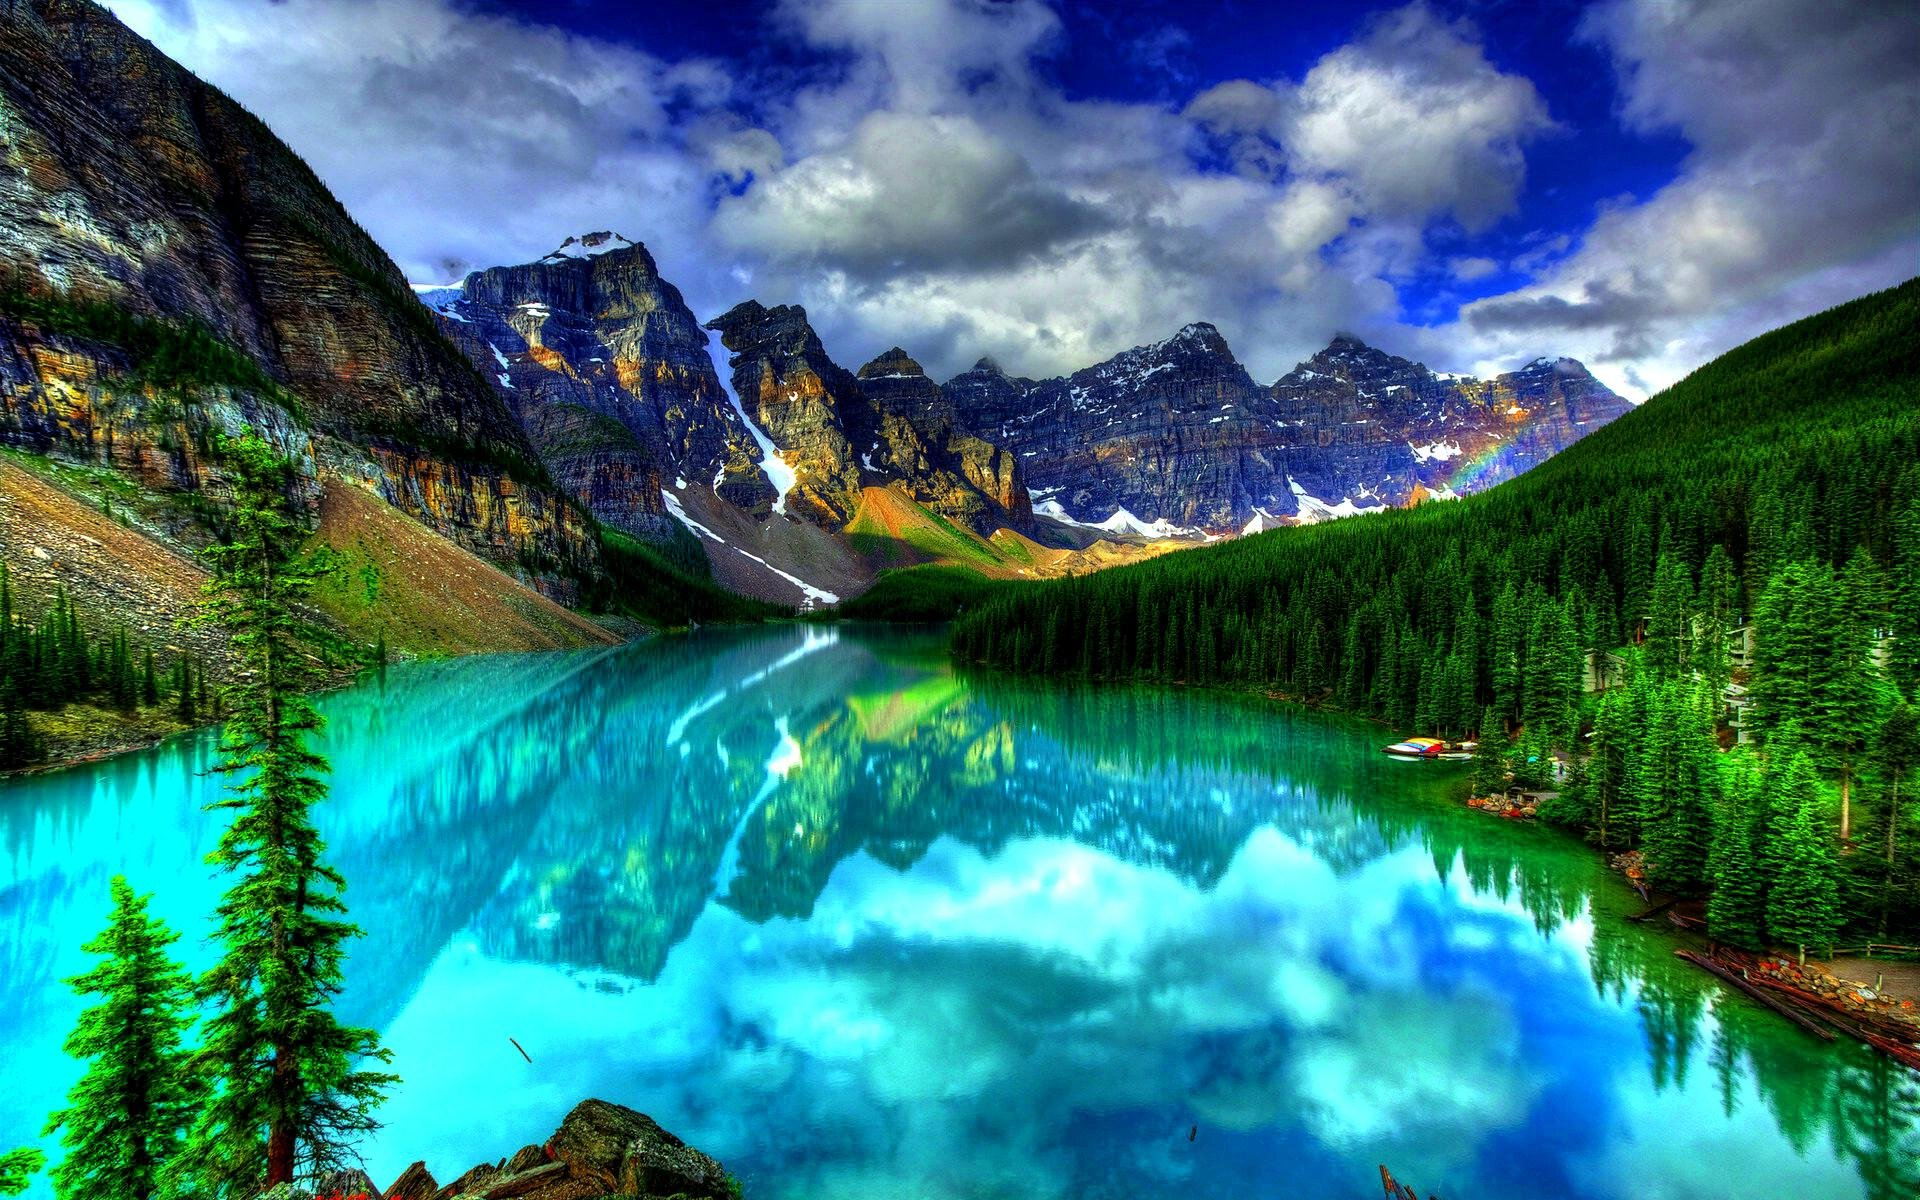 Best Moraine Lake Wallpaper Id 128748 For High Resolution Hd